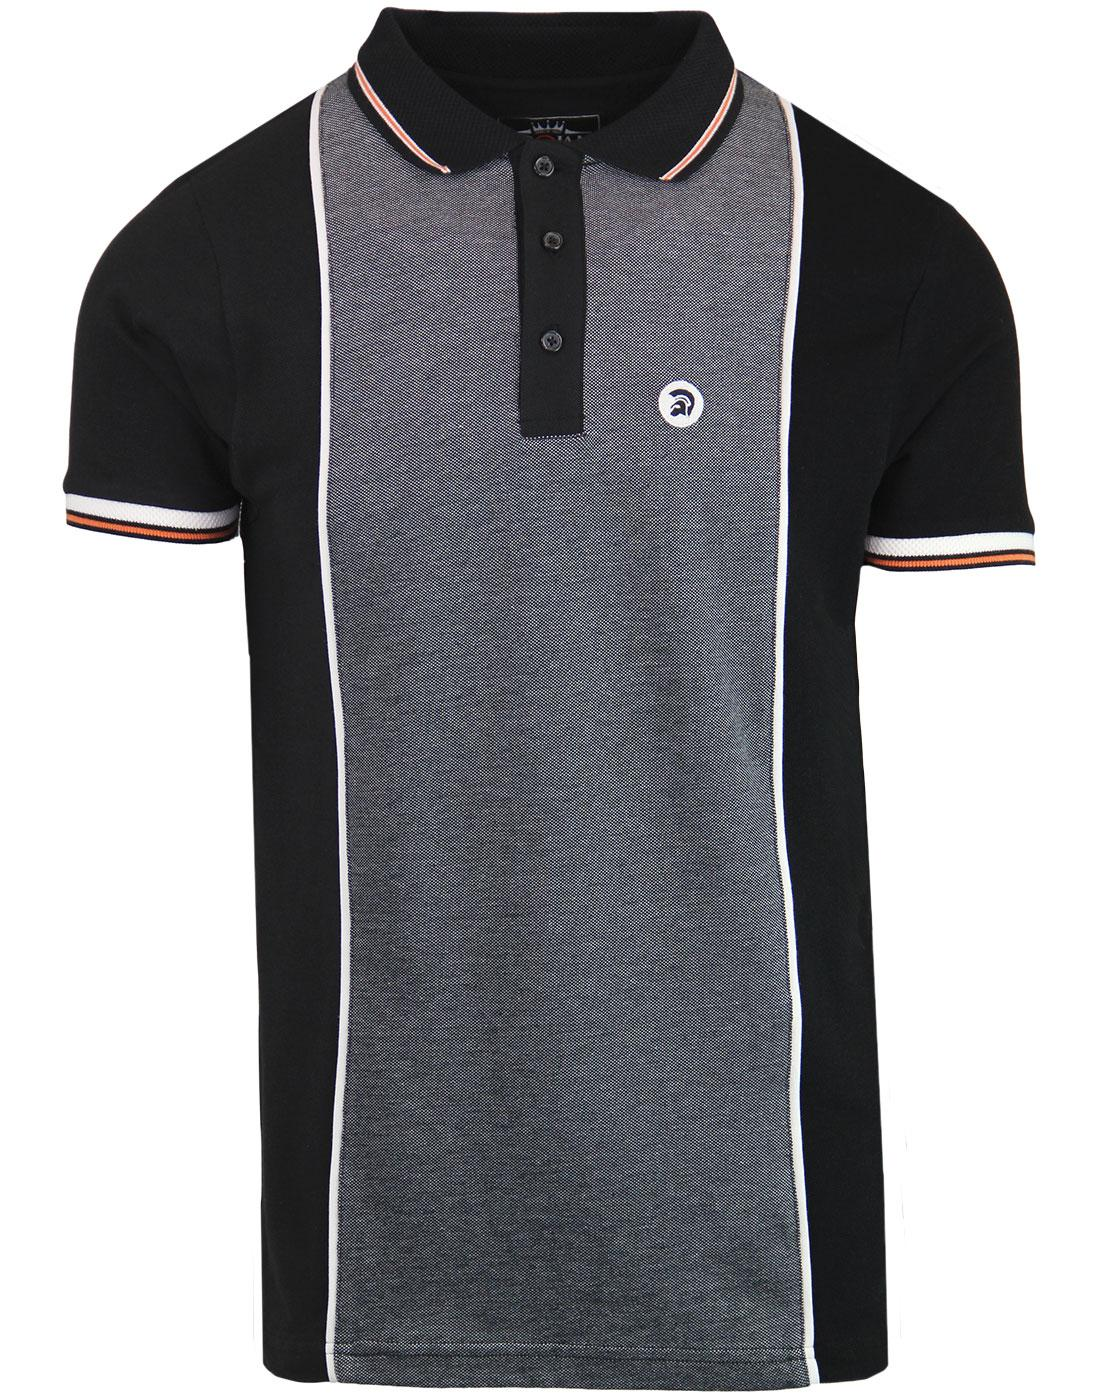 TROJAN RECORDS Mod Oxford Marl Panel Polo Top (B)